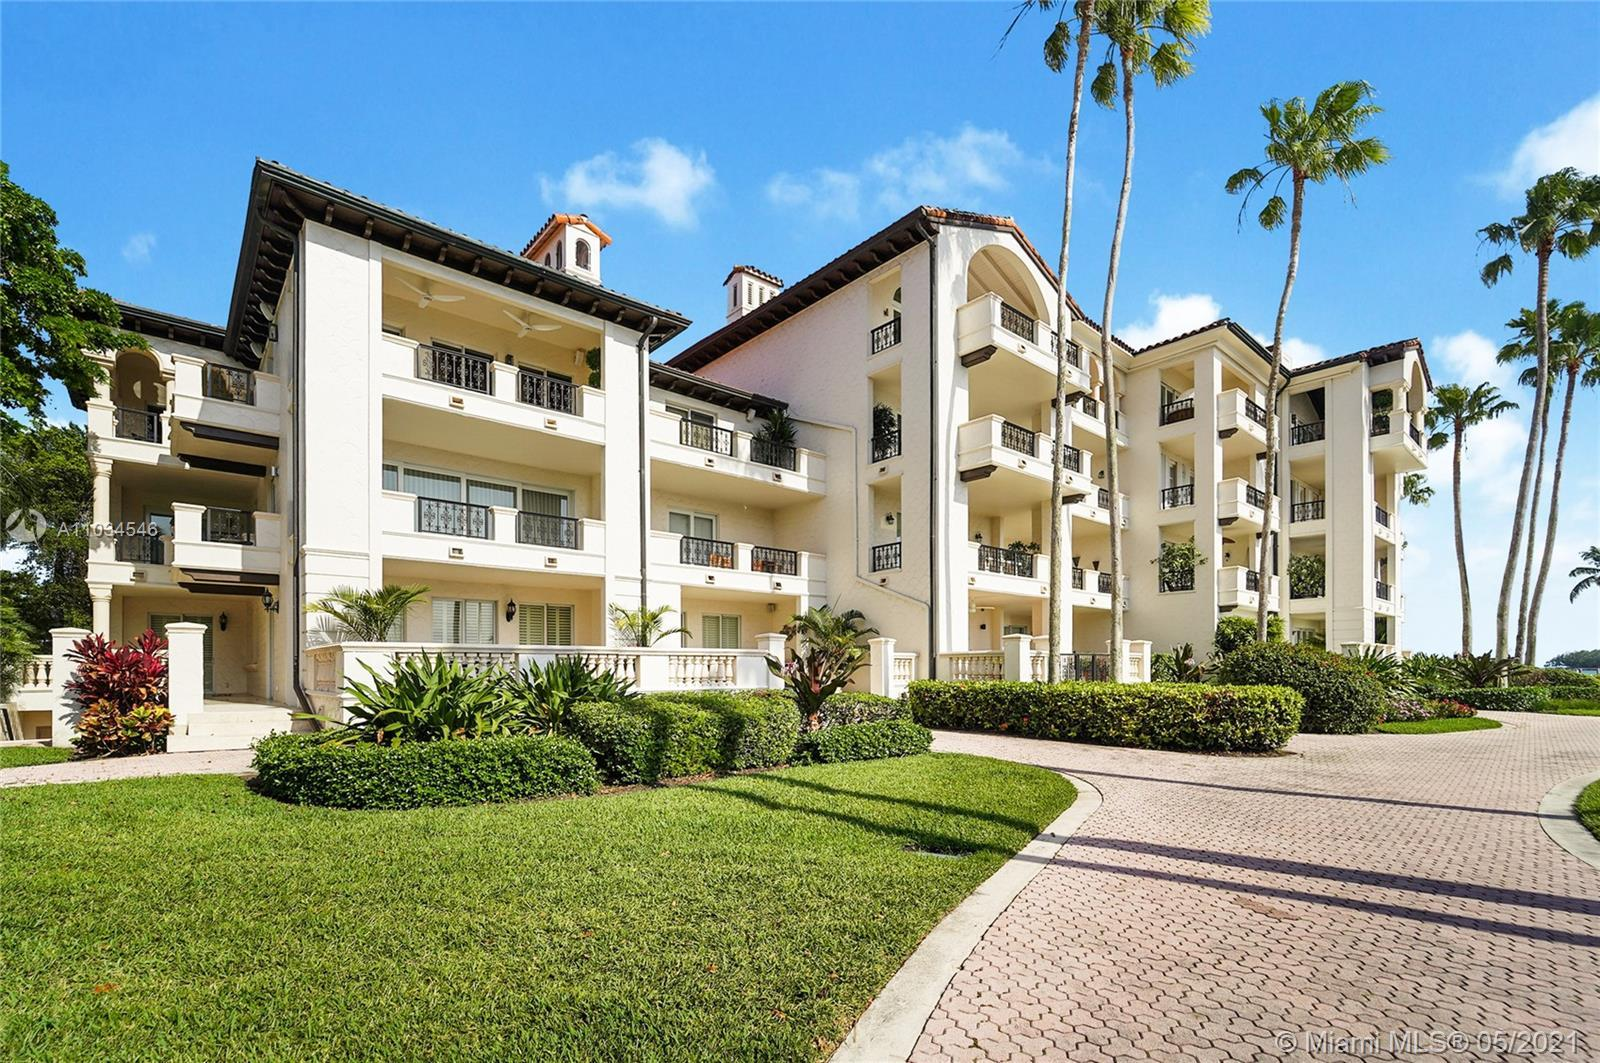 Enjoy living in the most luxurious, Exclusive and Safe condominiums in Miami. Fisher Island has an e